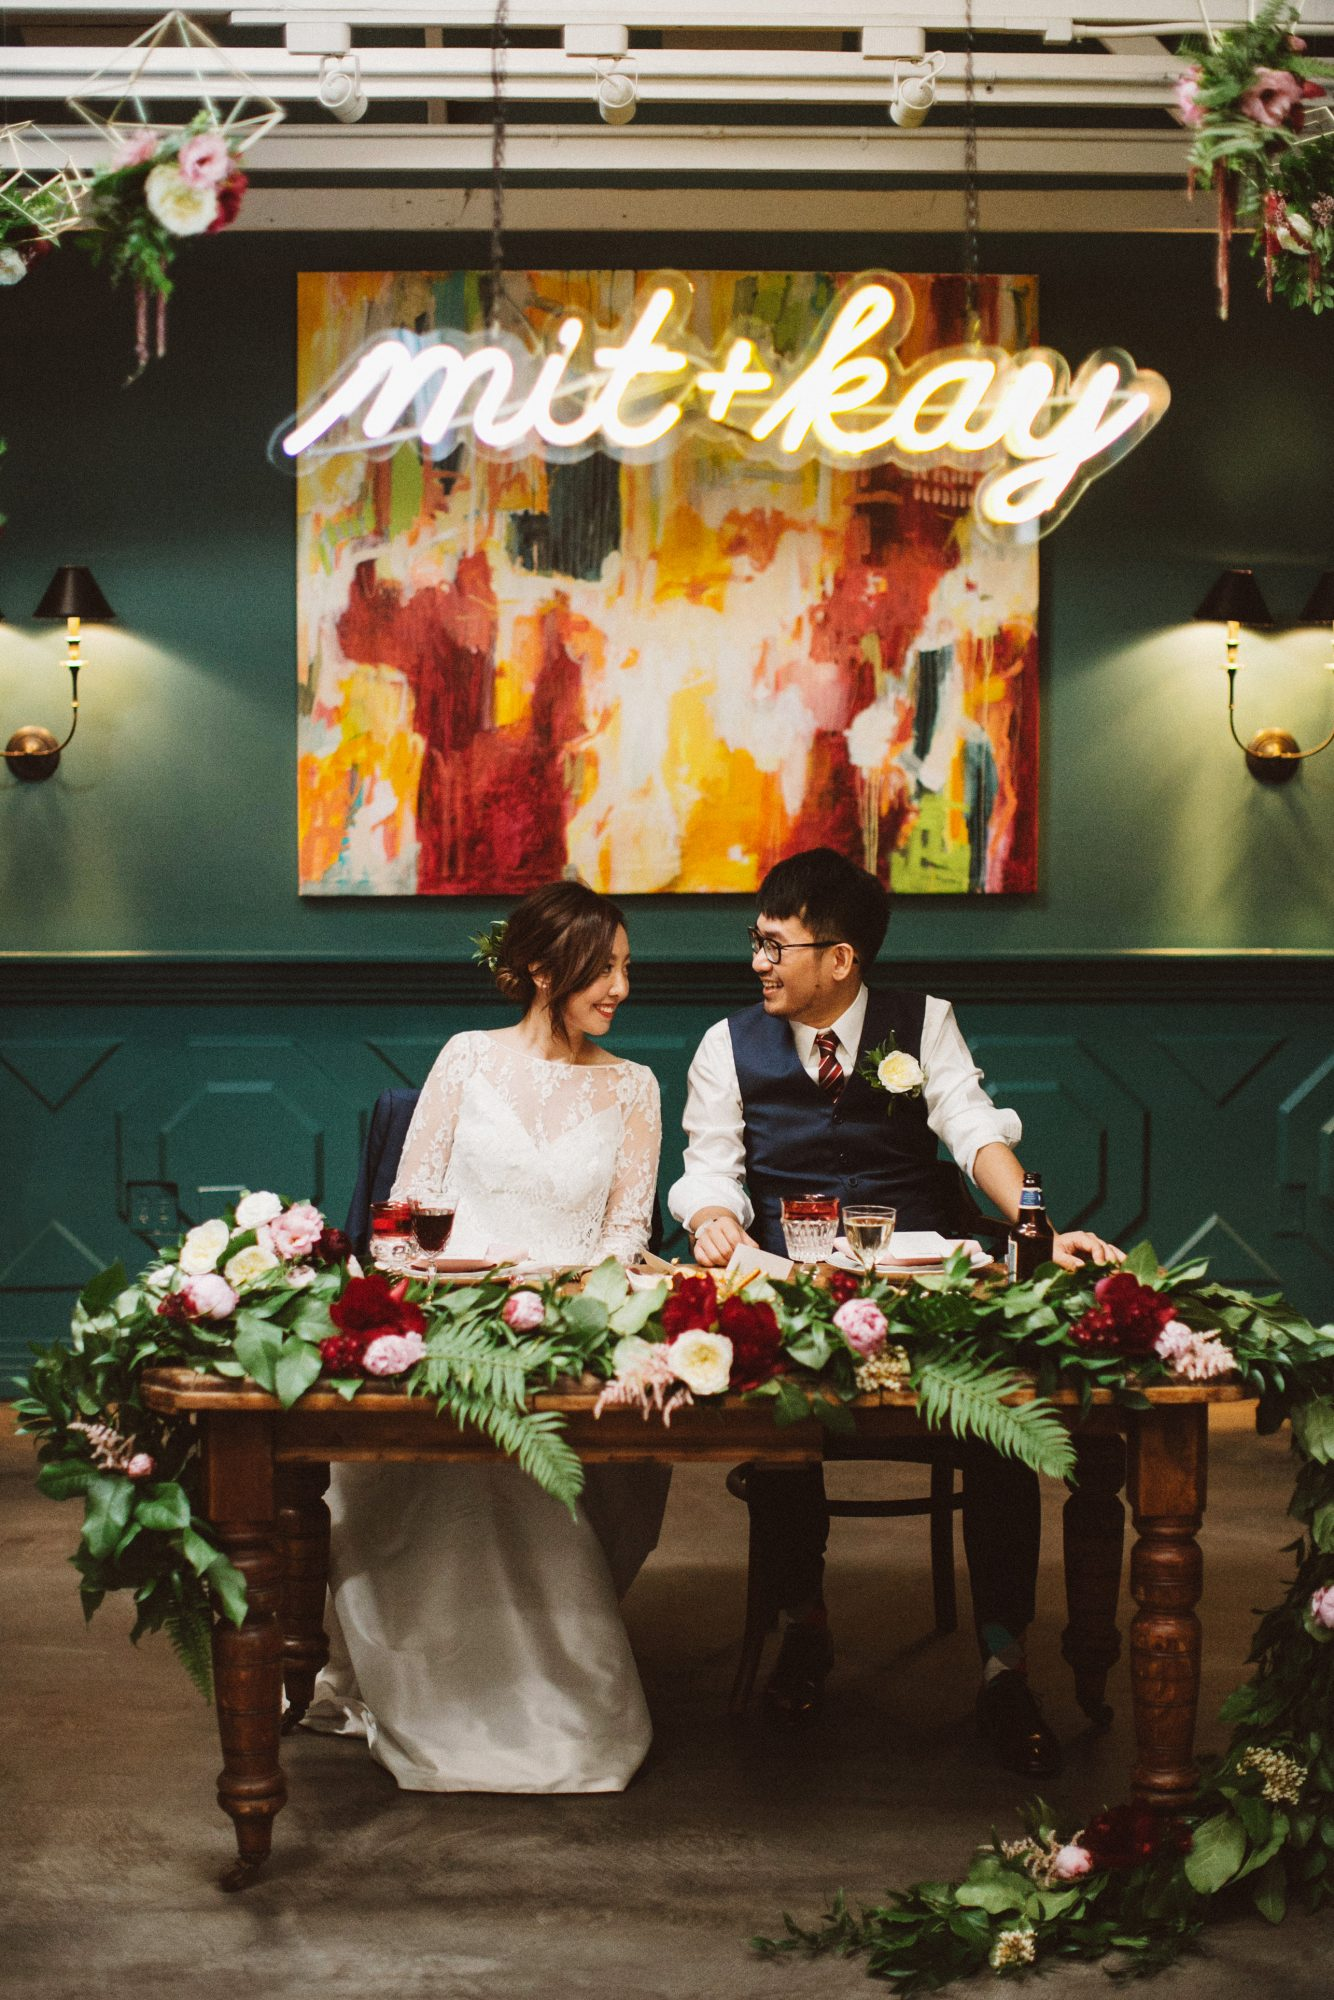 mit + kay neon sign behind sweetheart table with couple